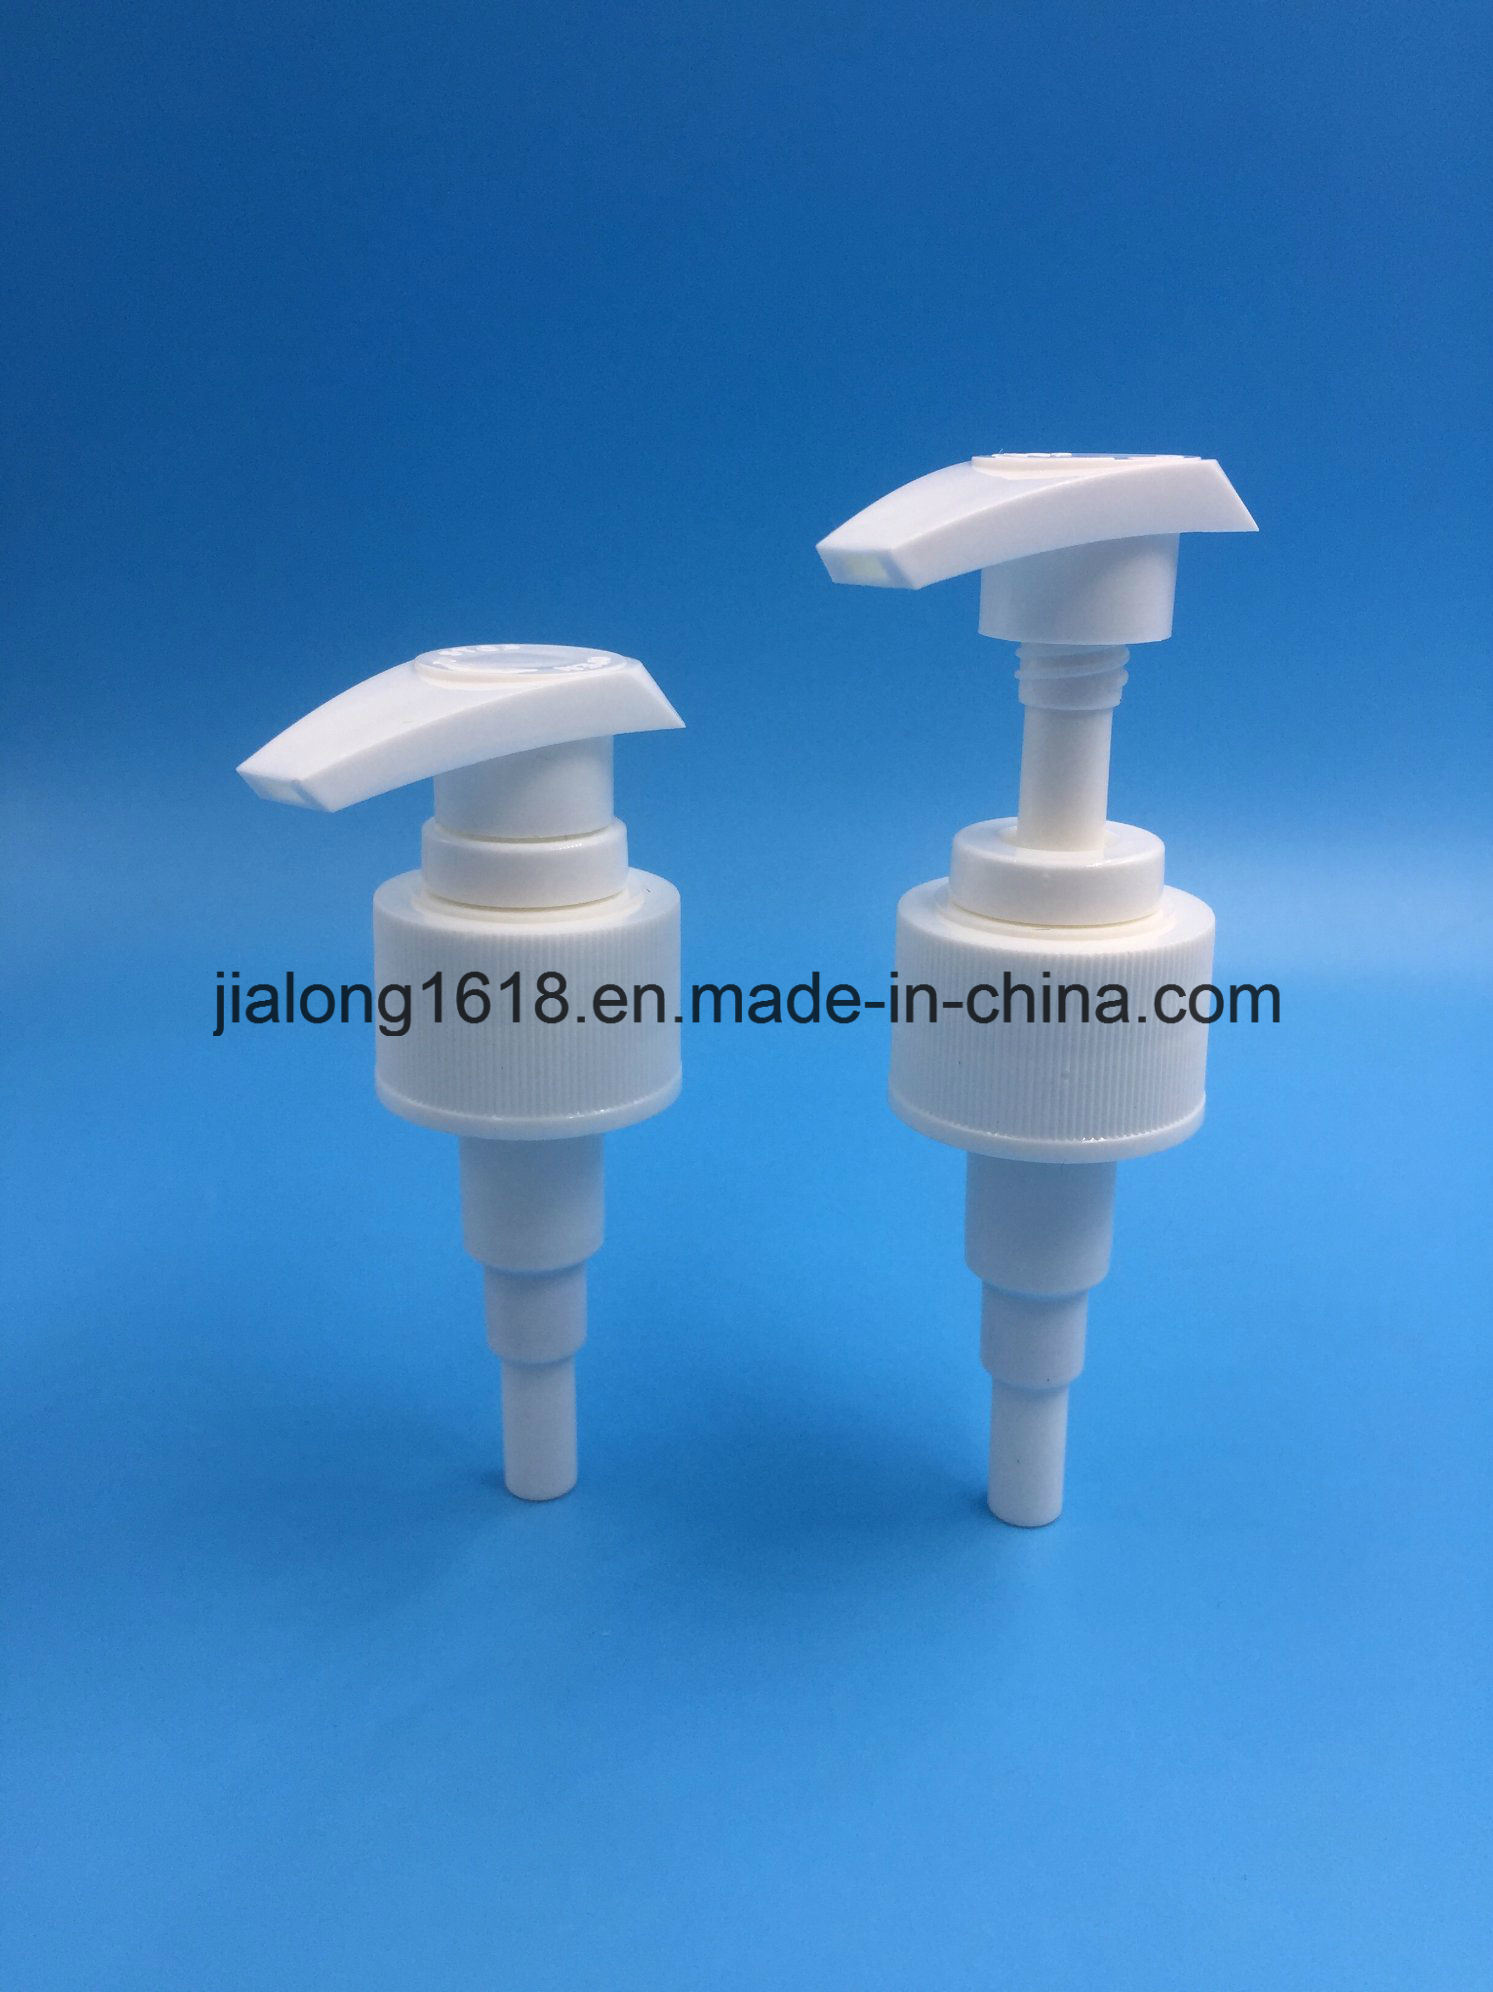 24/410 28/410 Screw Lotion Pump for Soap Shampoo Lotion